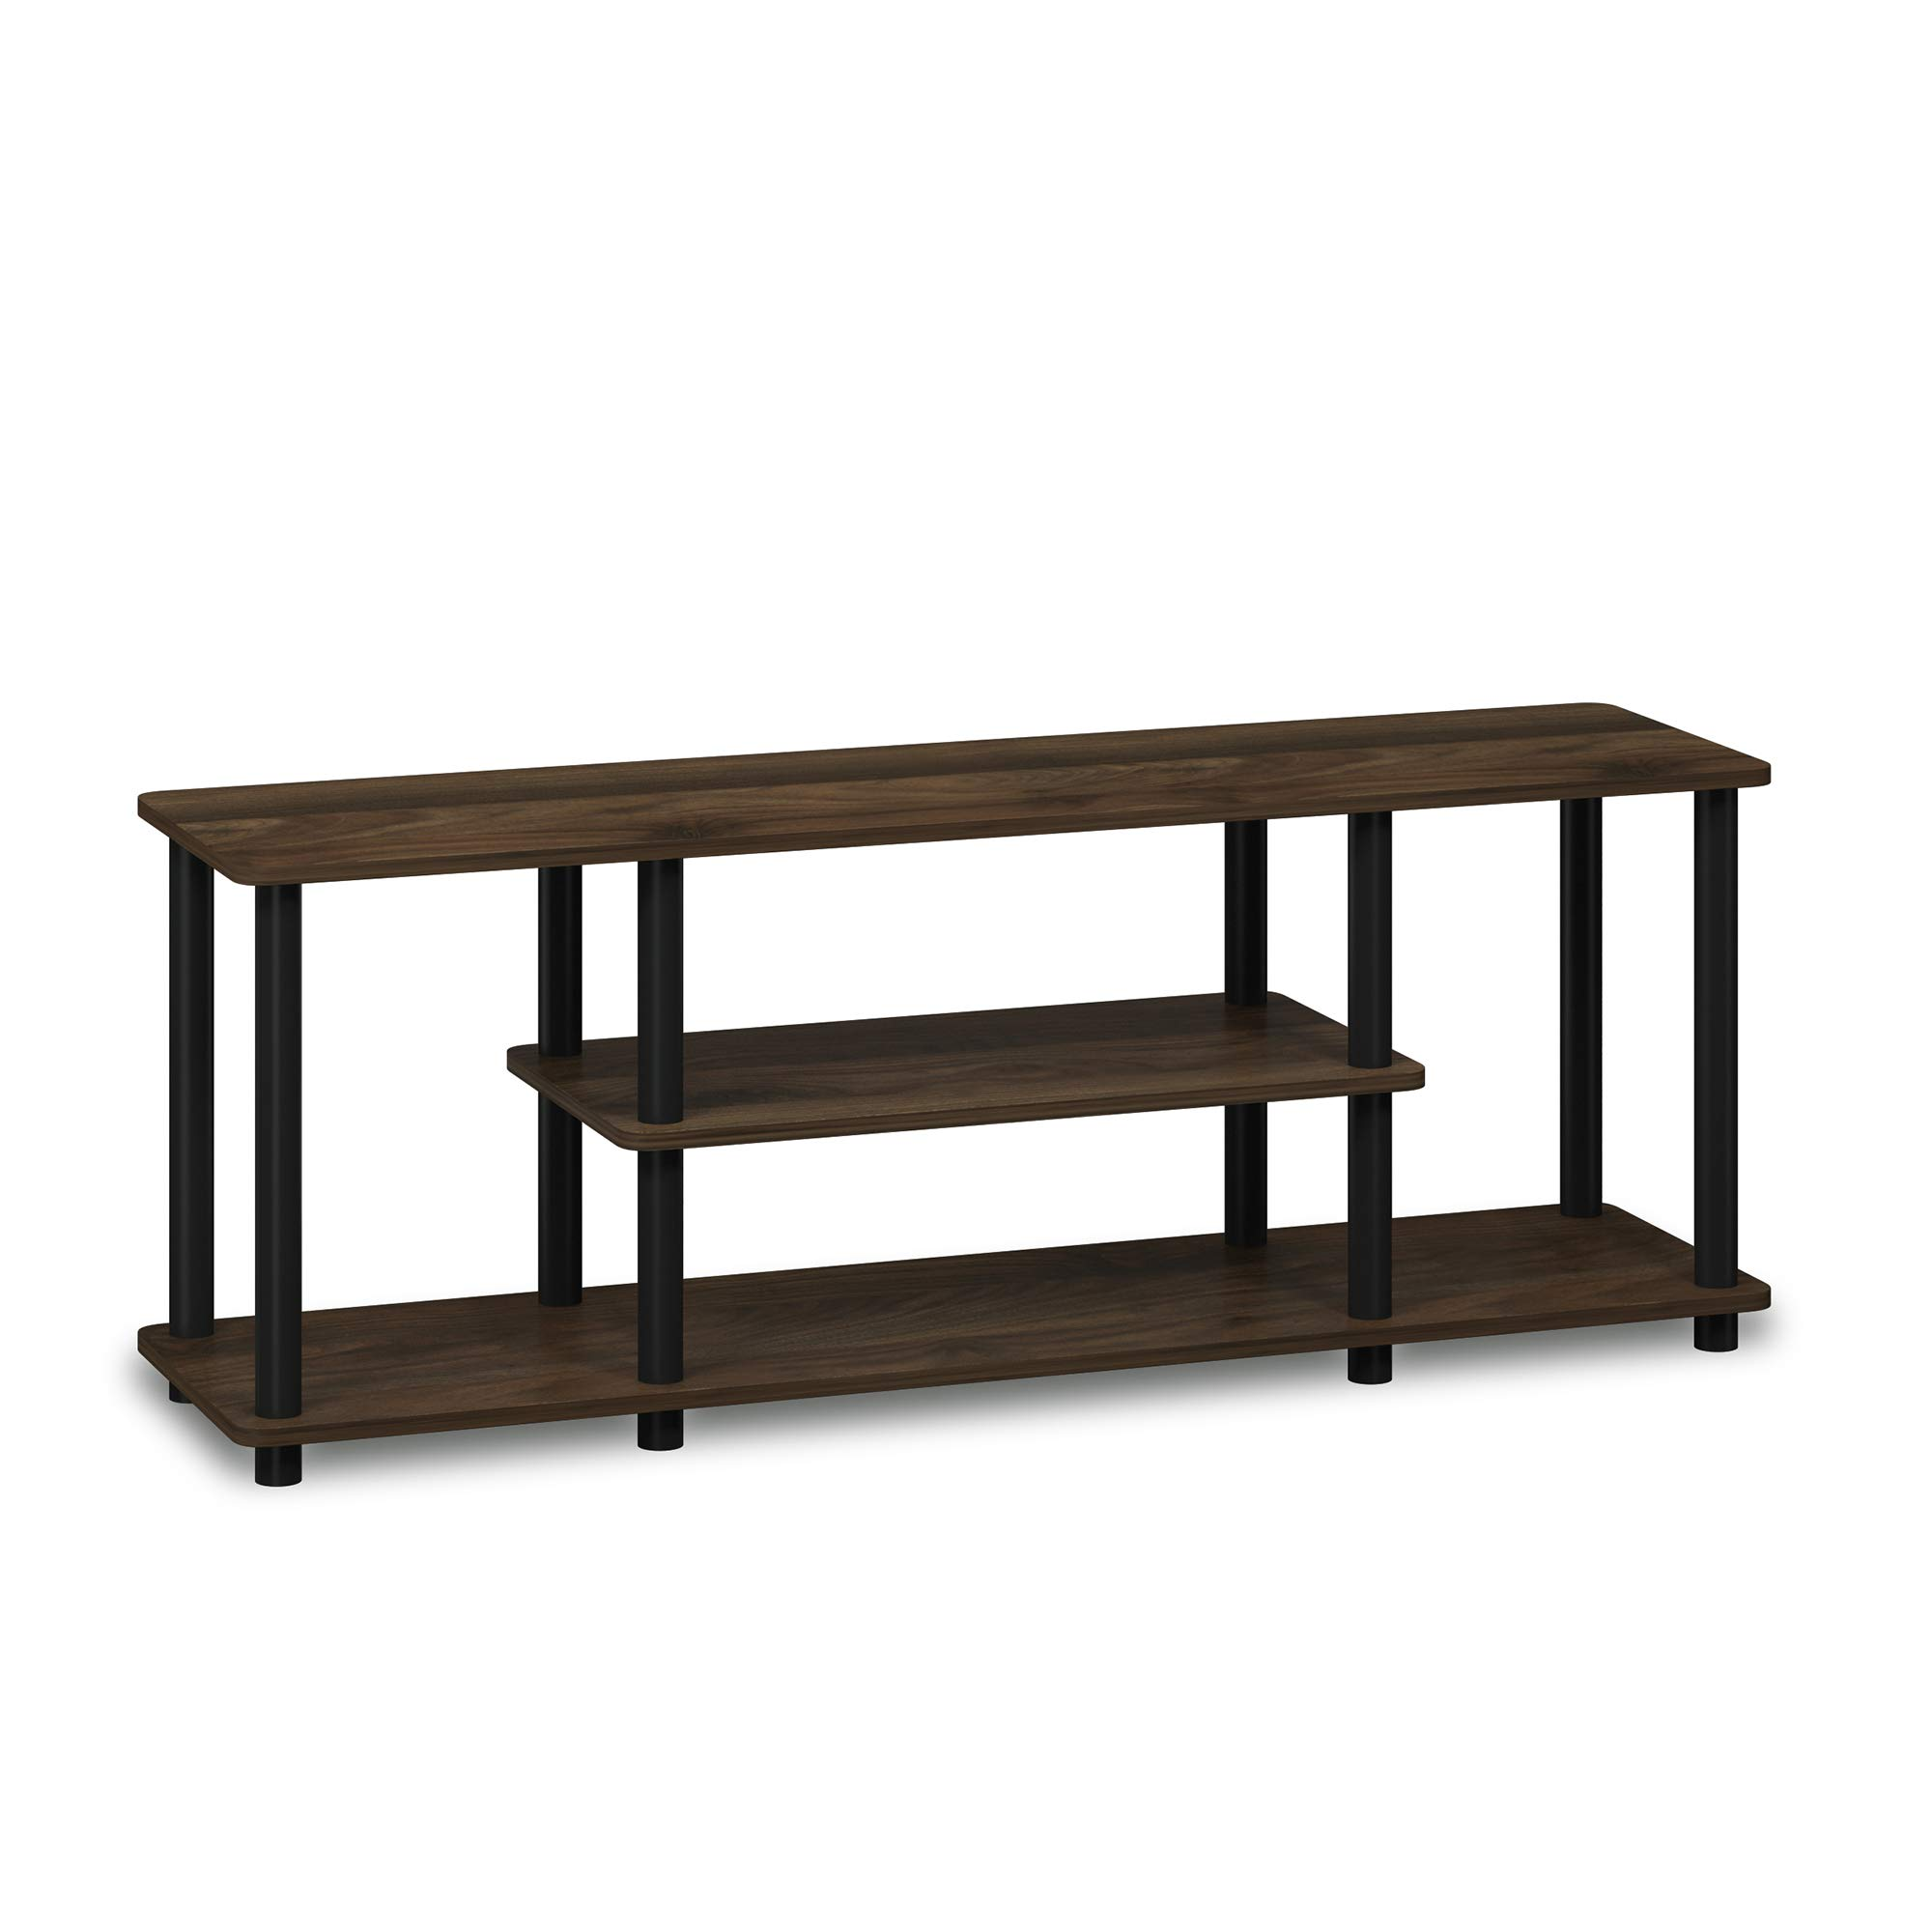 Furinno 12250GYW/BK Turn-N-Tube 3-Tier Entertainment Tv Stand, French Oak Grey/Black